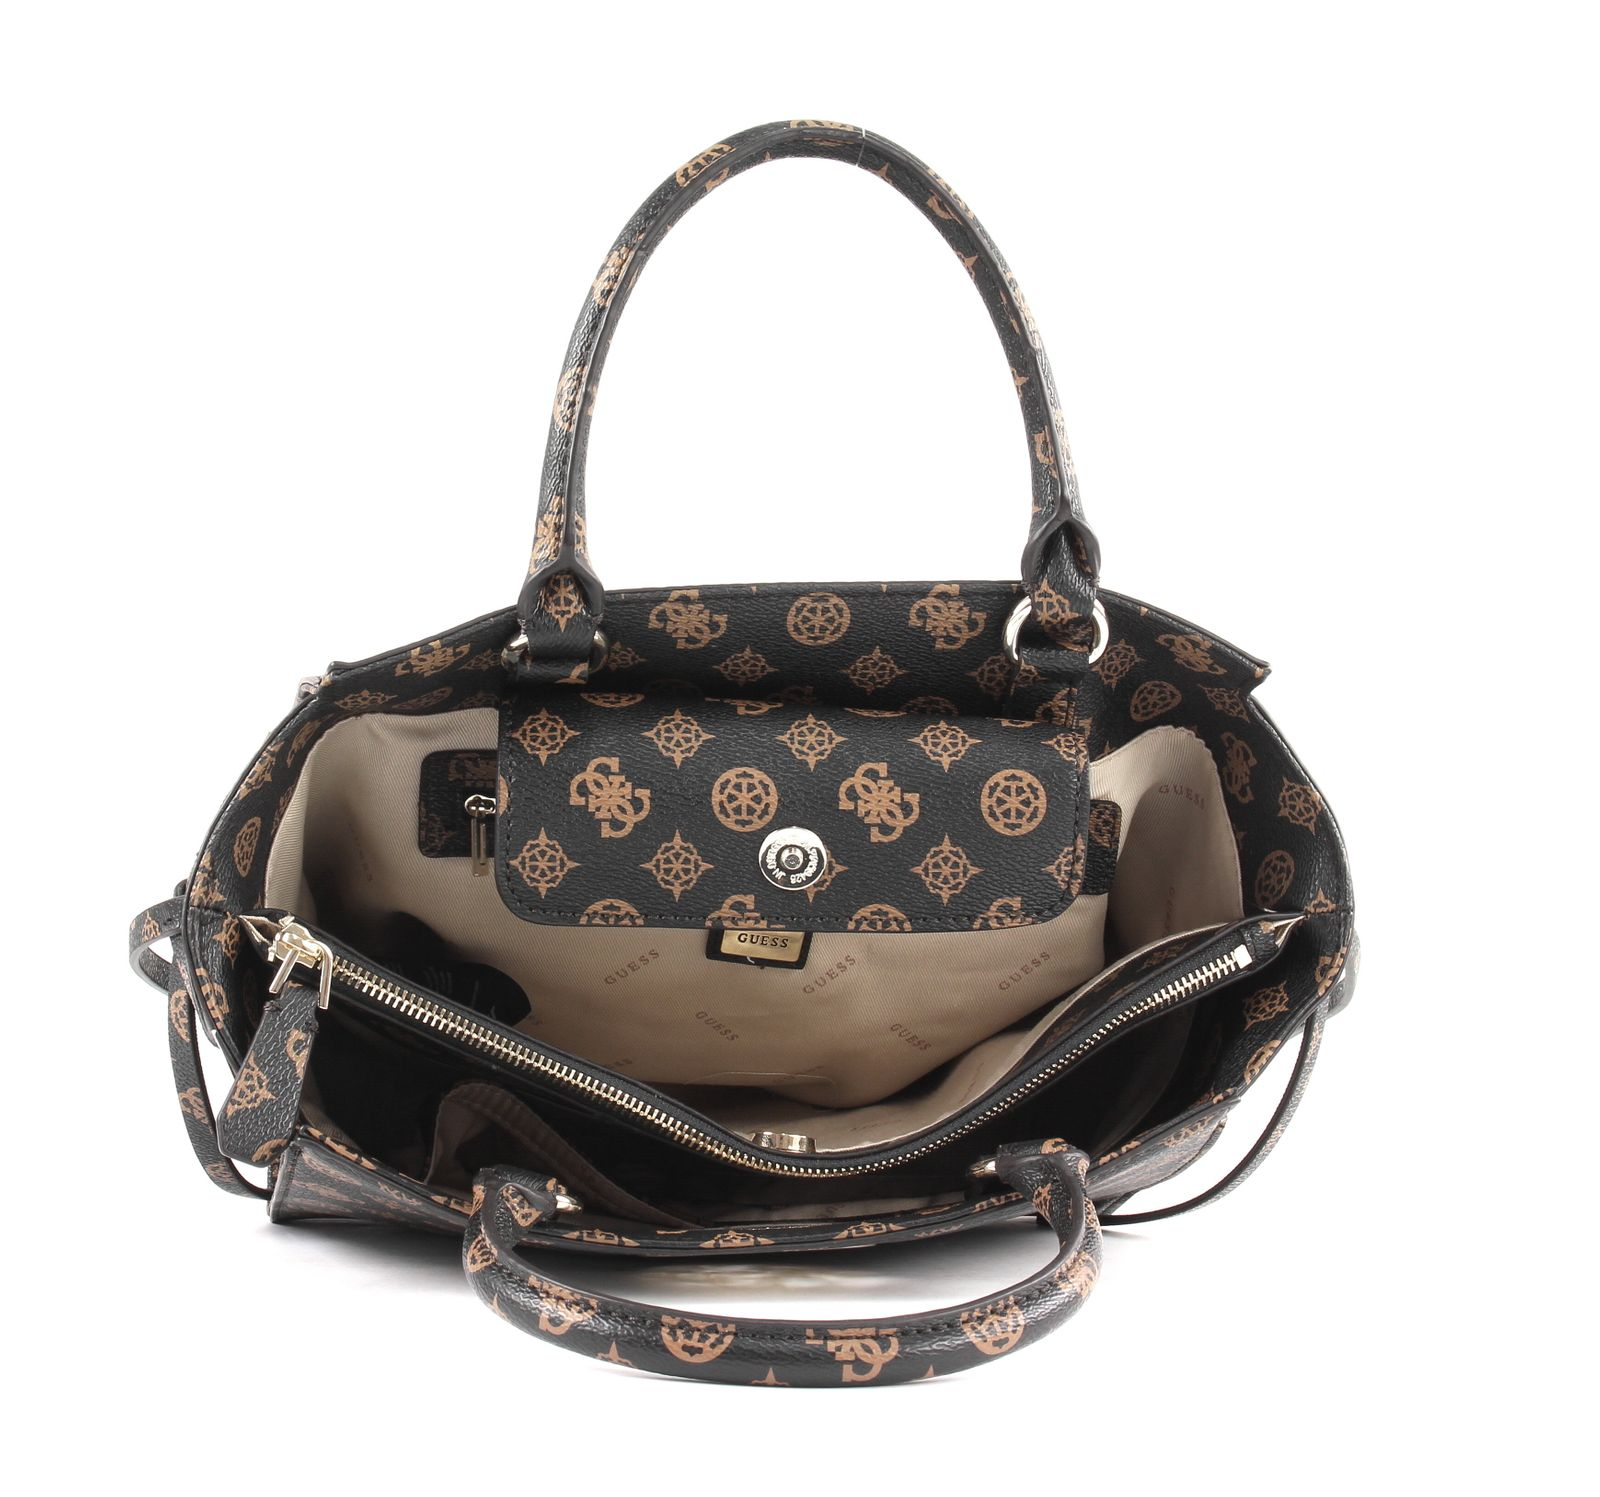 GUESS Open Road Society Satchel Brown